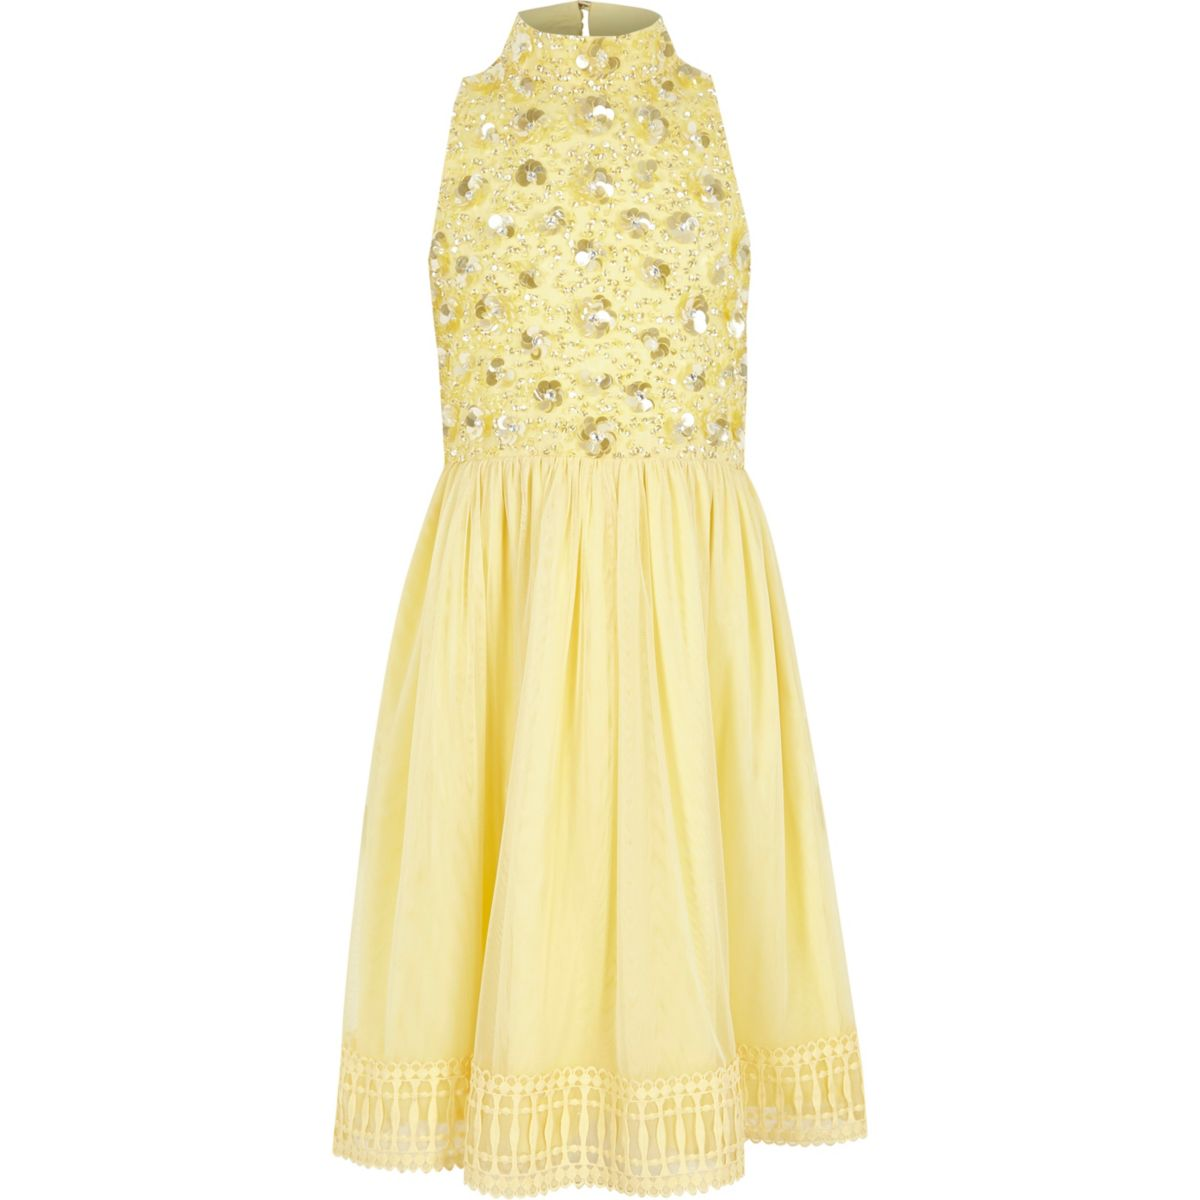 Girls yellow embellished flower girls dress